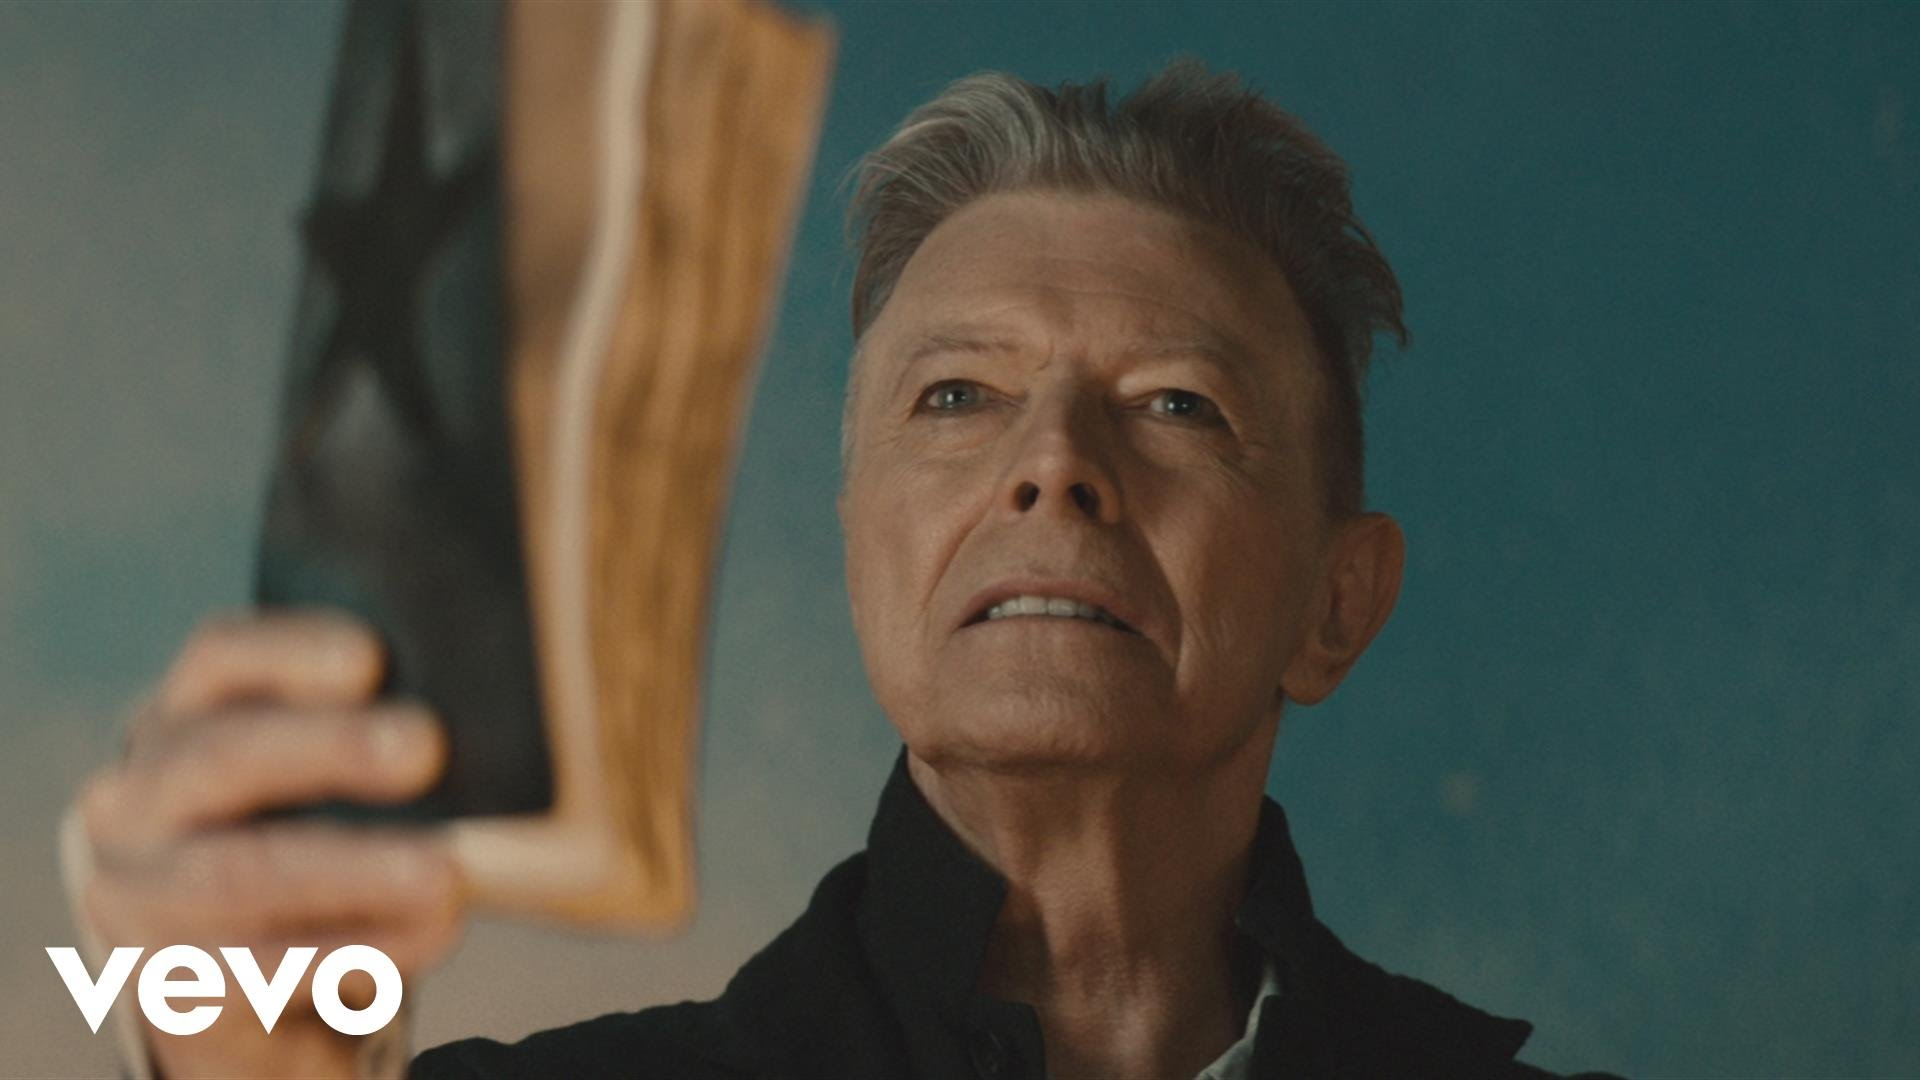 David Bowie's first known recording sold for over $50,000 at auction